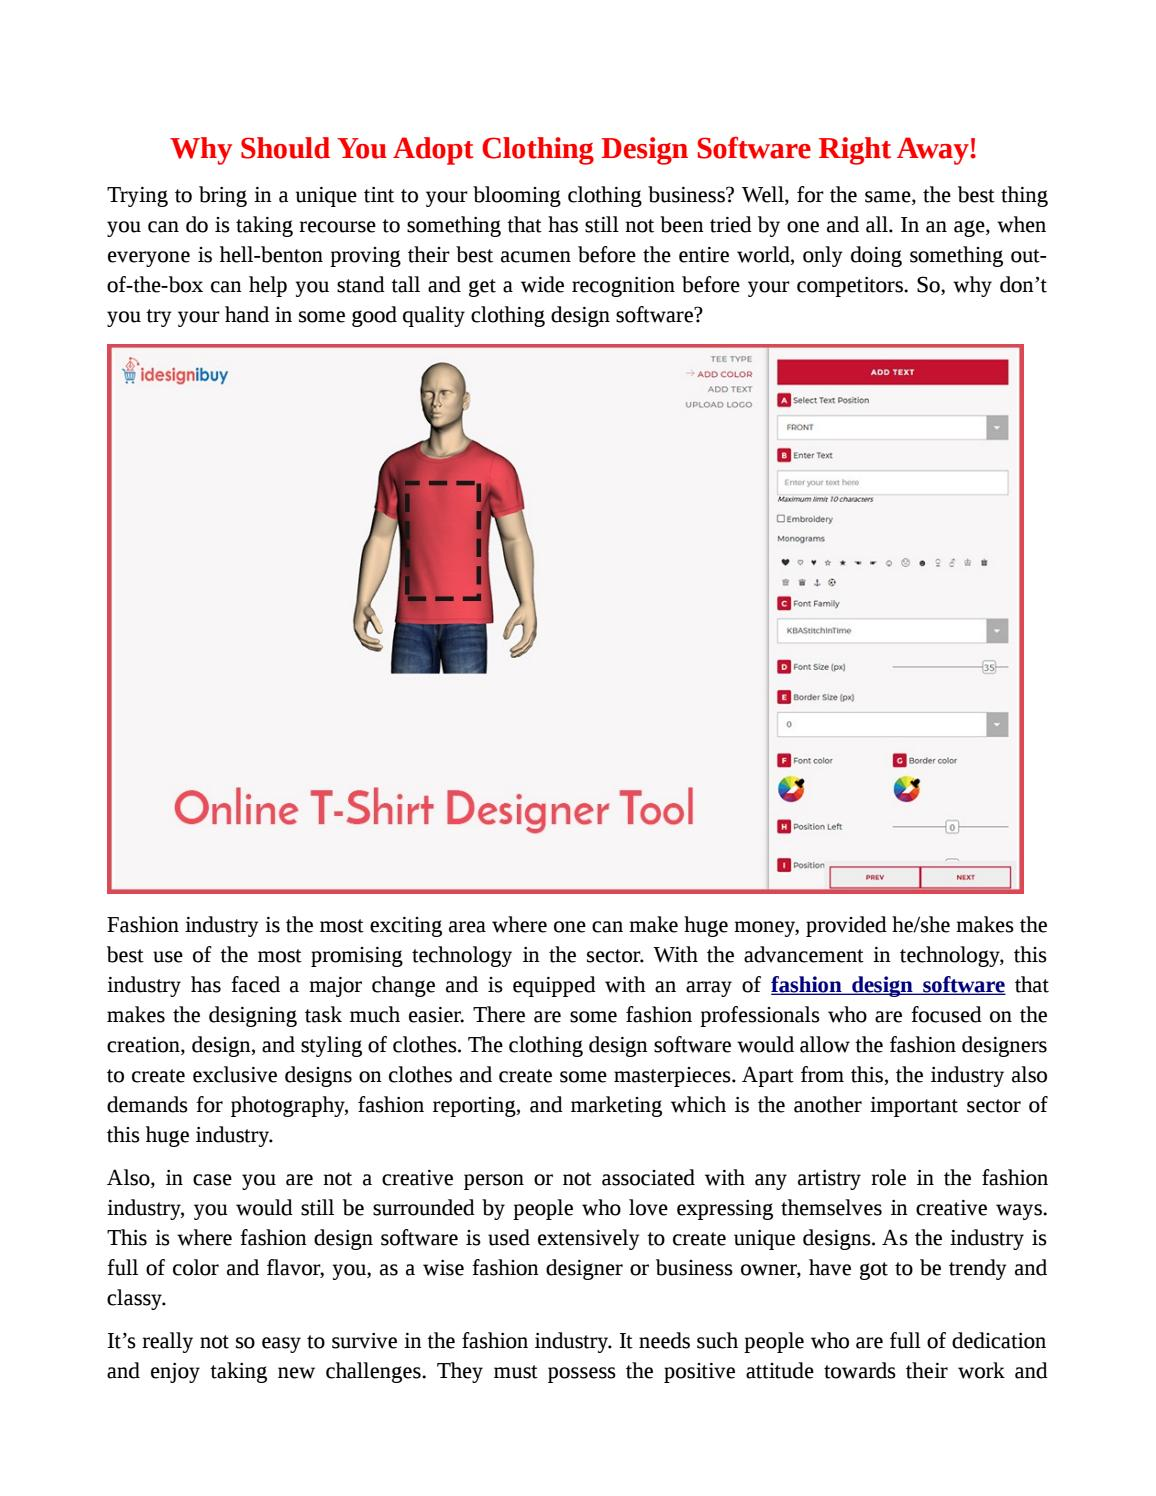 Why Should You Adopt Clothing Design Software Right Away By Idesignibuy Issuu